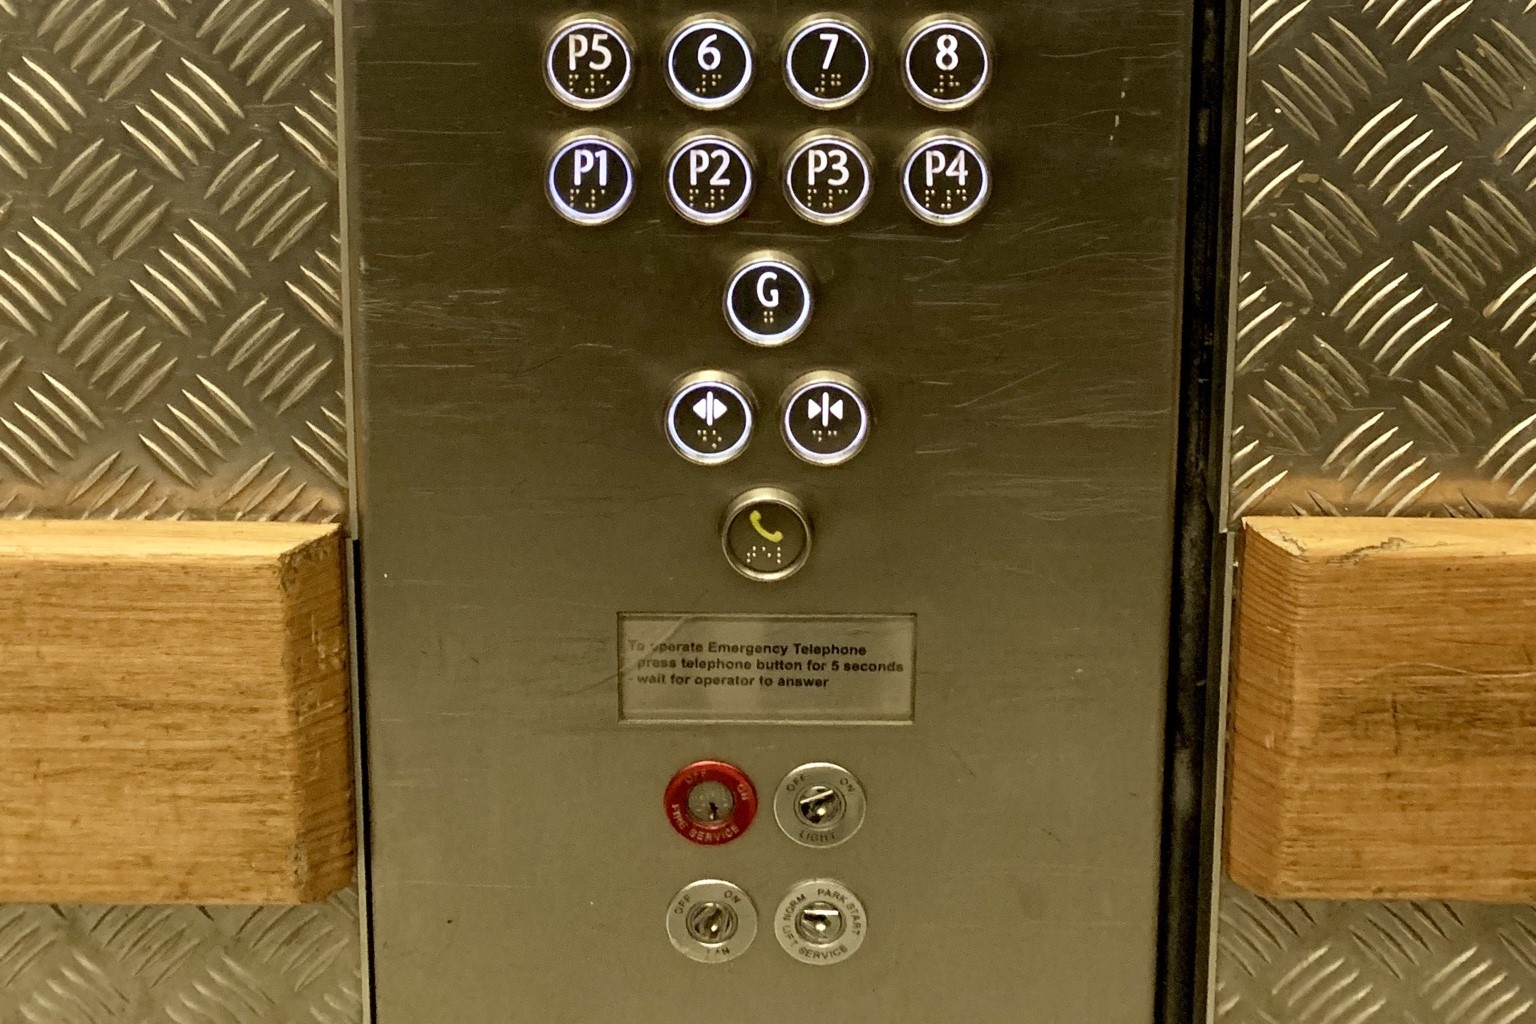 An image of a lift control panel with the ground floor separate, the phone button protected by a ridge, and a series of key holes underneath.